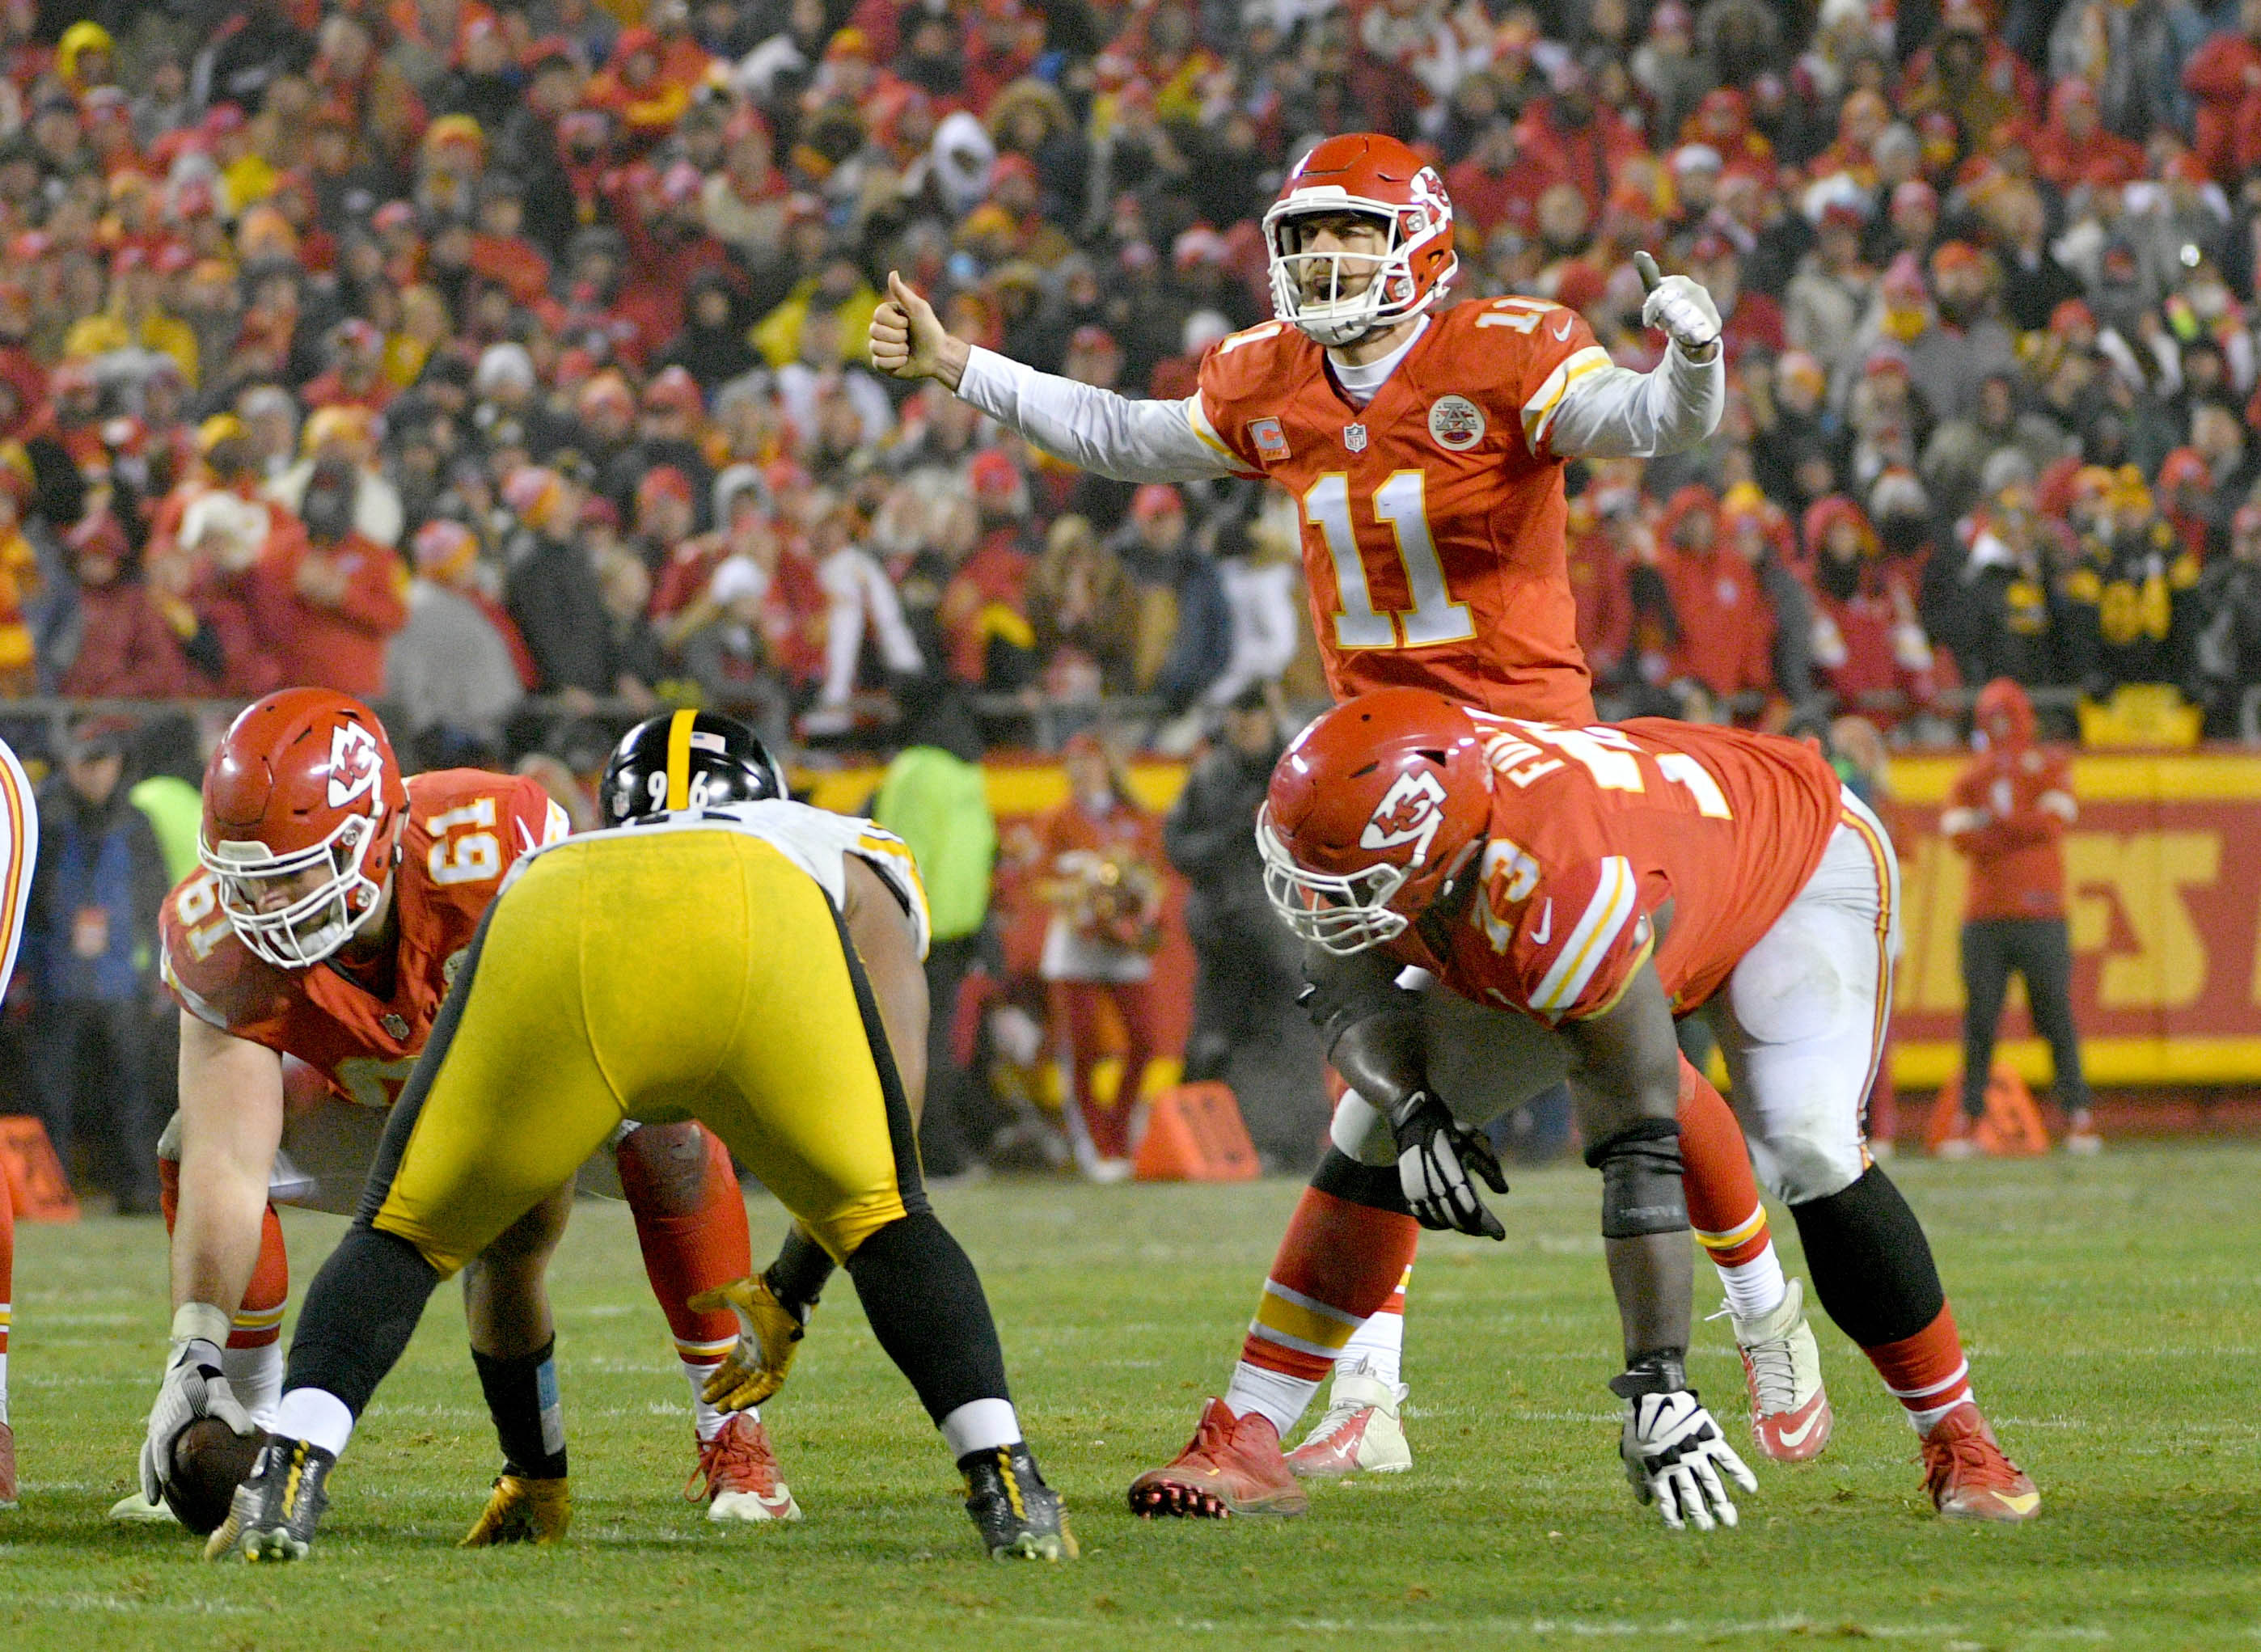 Jan 15, 2017; Kansas City, MO, USA; Kansas City Chiefs quarterback Alex Smith (11) signals on the line of scrimmage in the AFC Divisional playoff game against the Pittsburgh Steelers at Arrowhead Stadium. Pittsburgh won 18-16. Mandatory Credit: Denny Medley-USA TODAY Sports